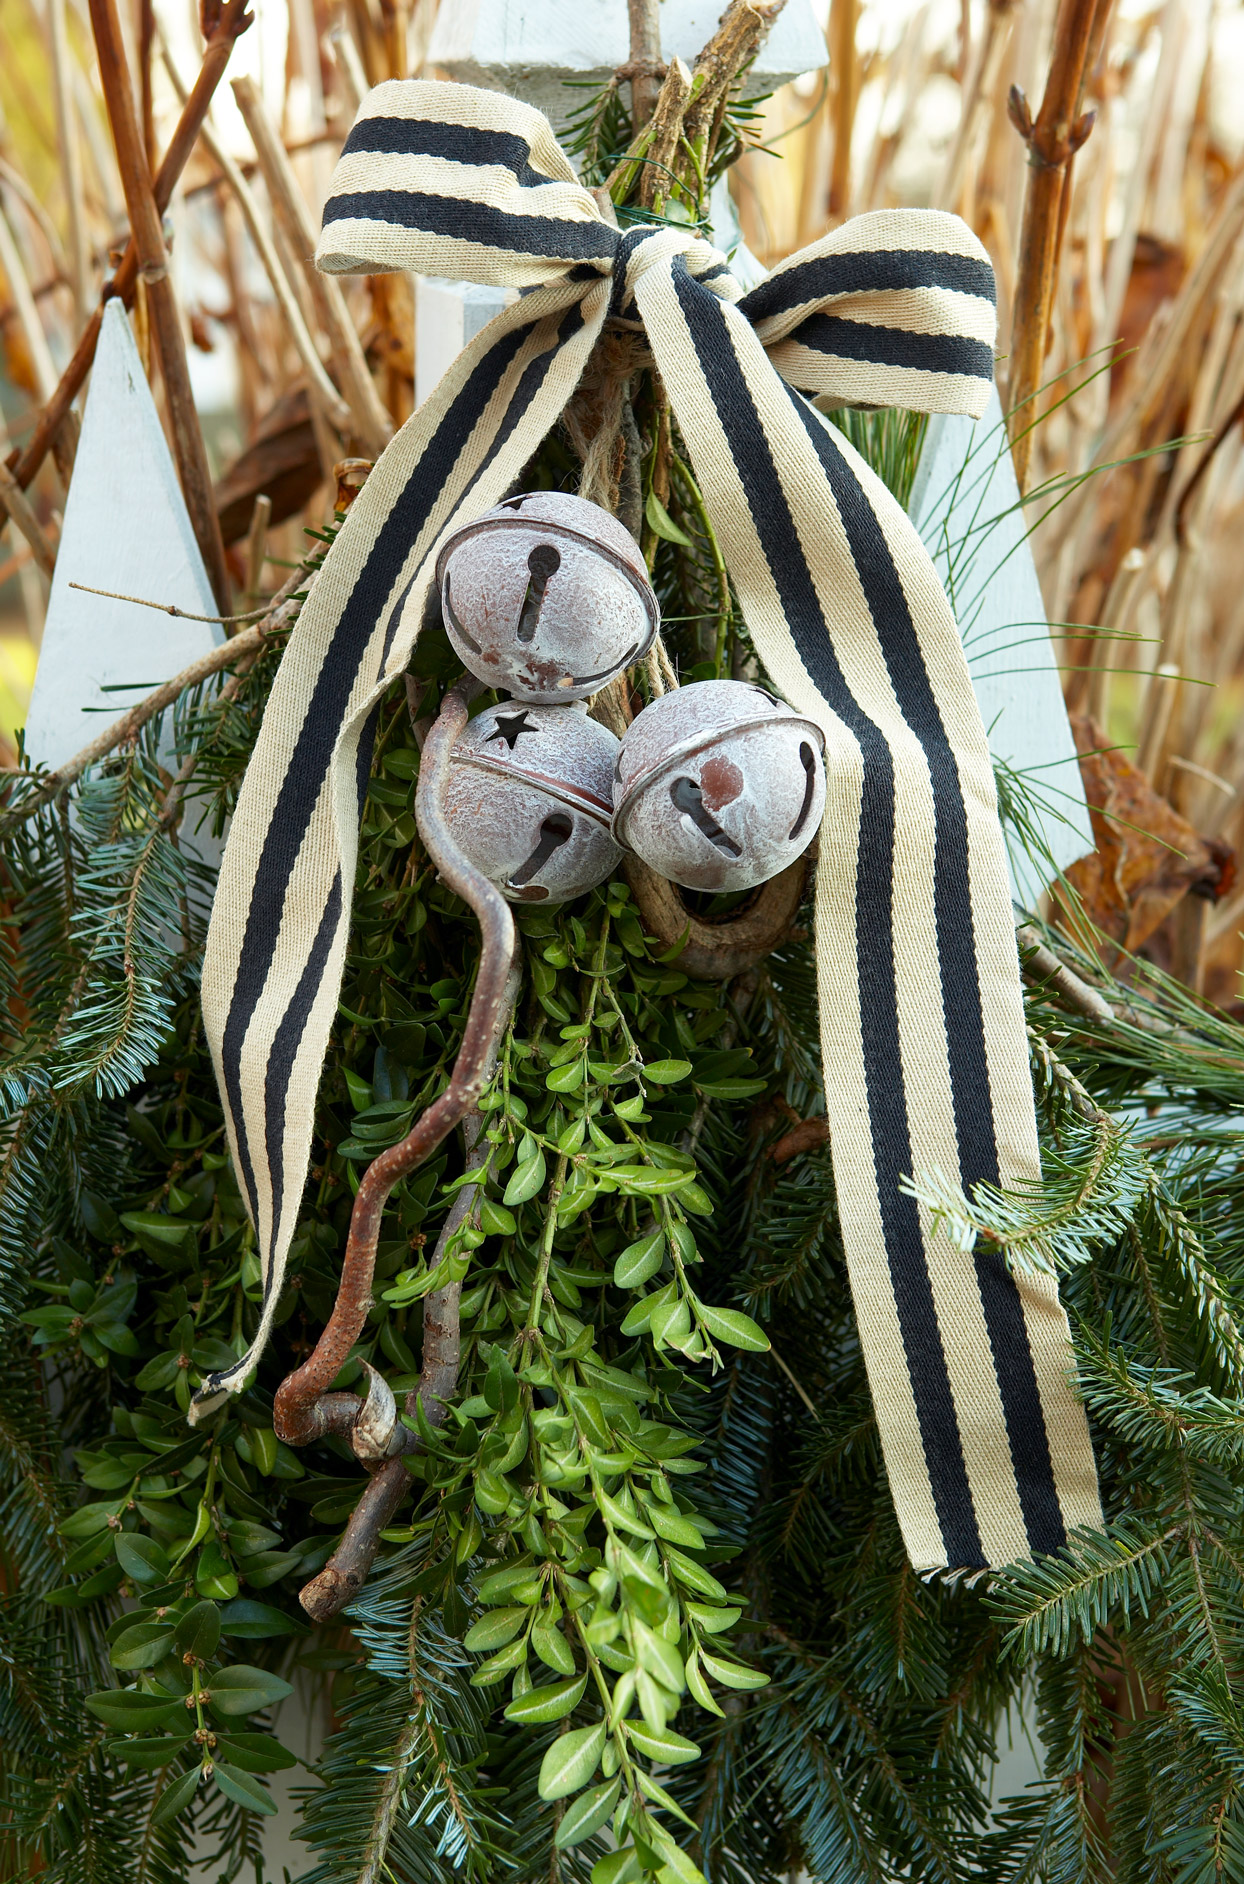 greenery decorated with jingle bells and ribbon